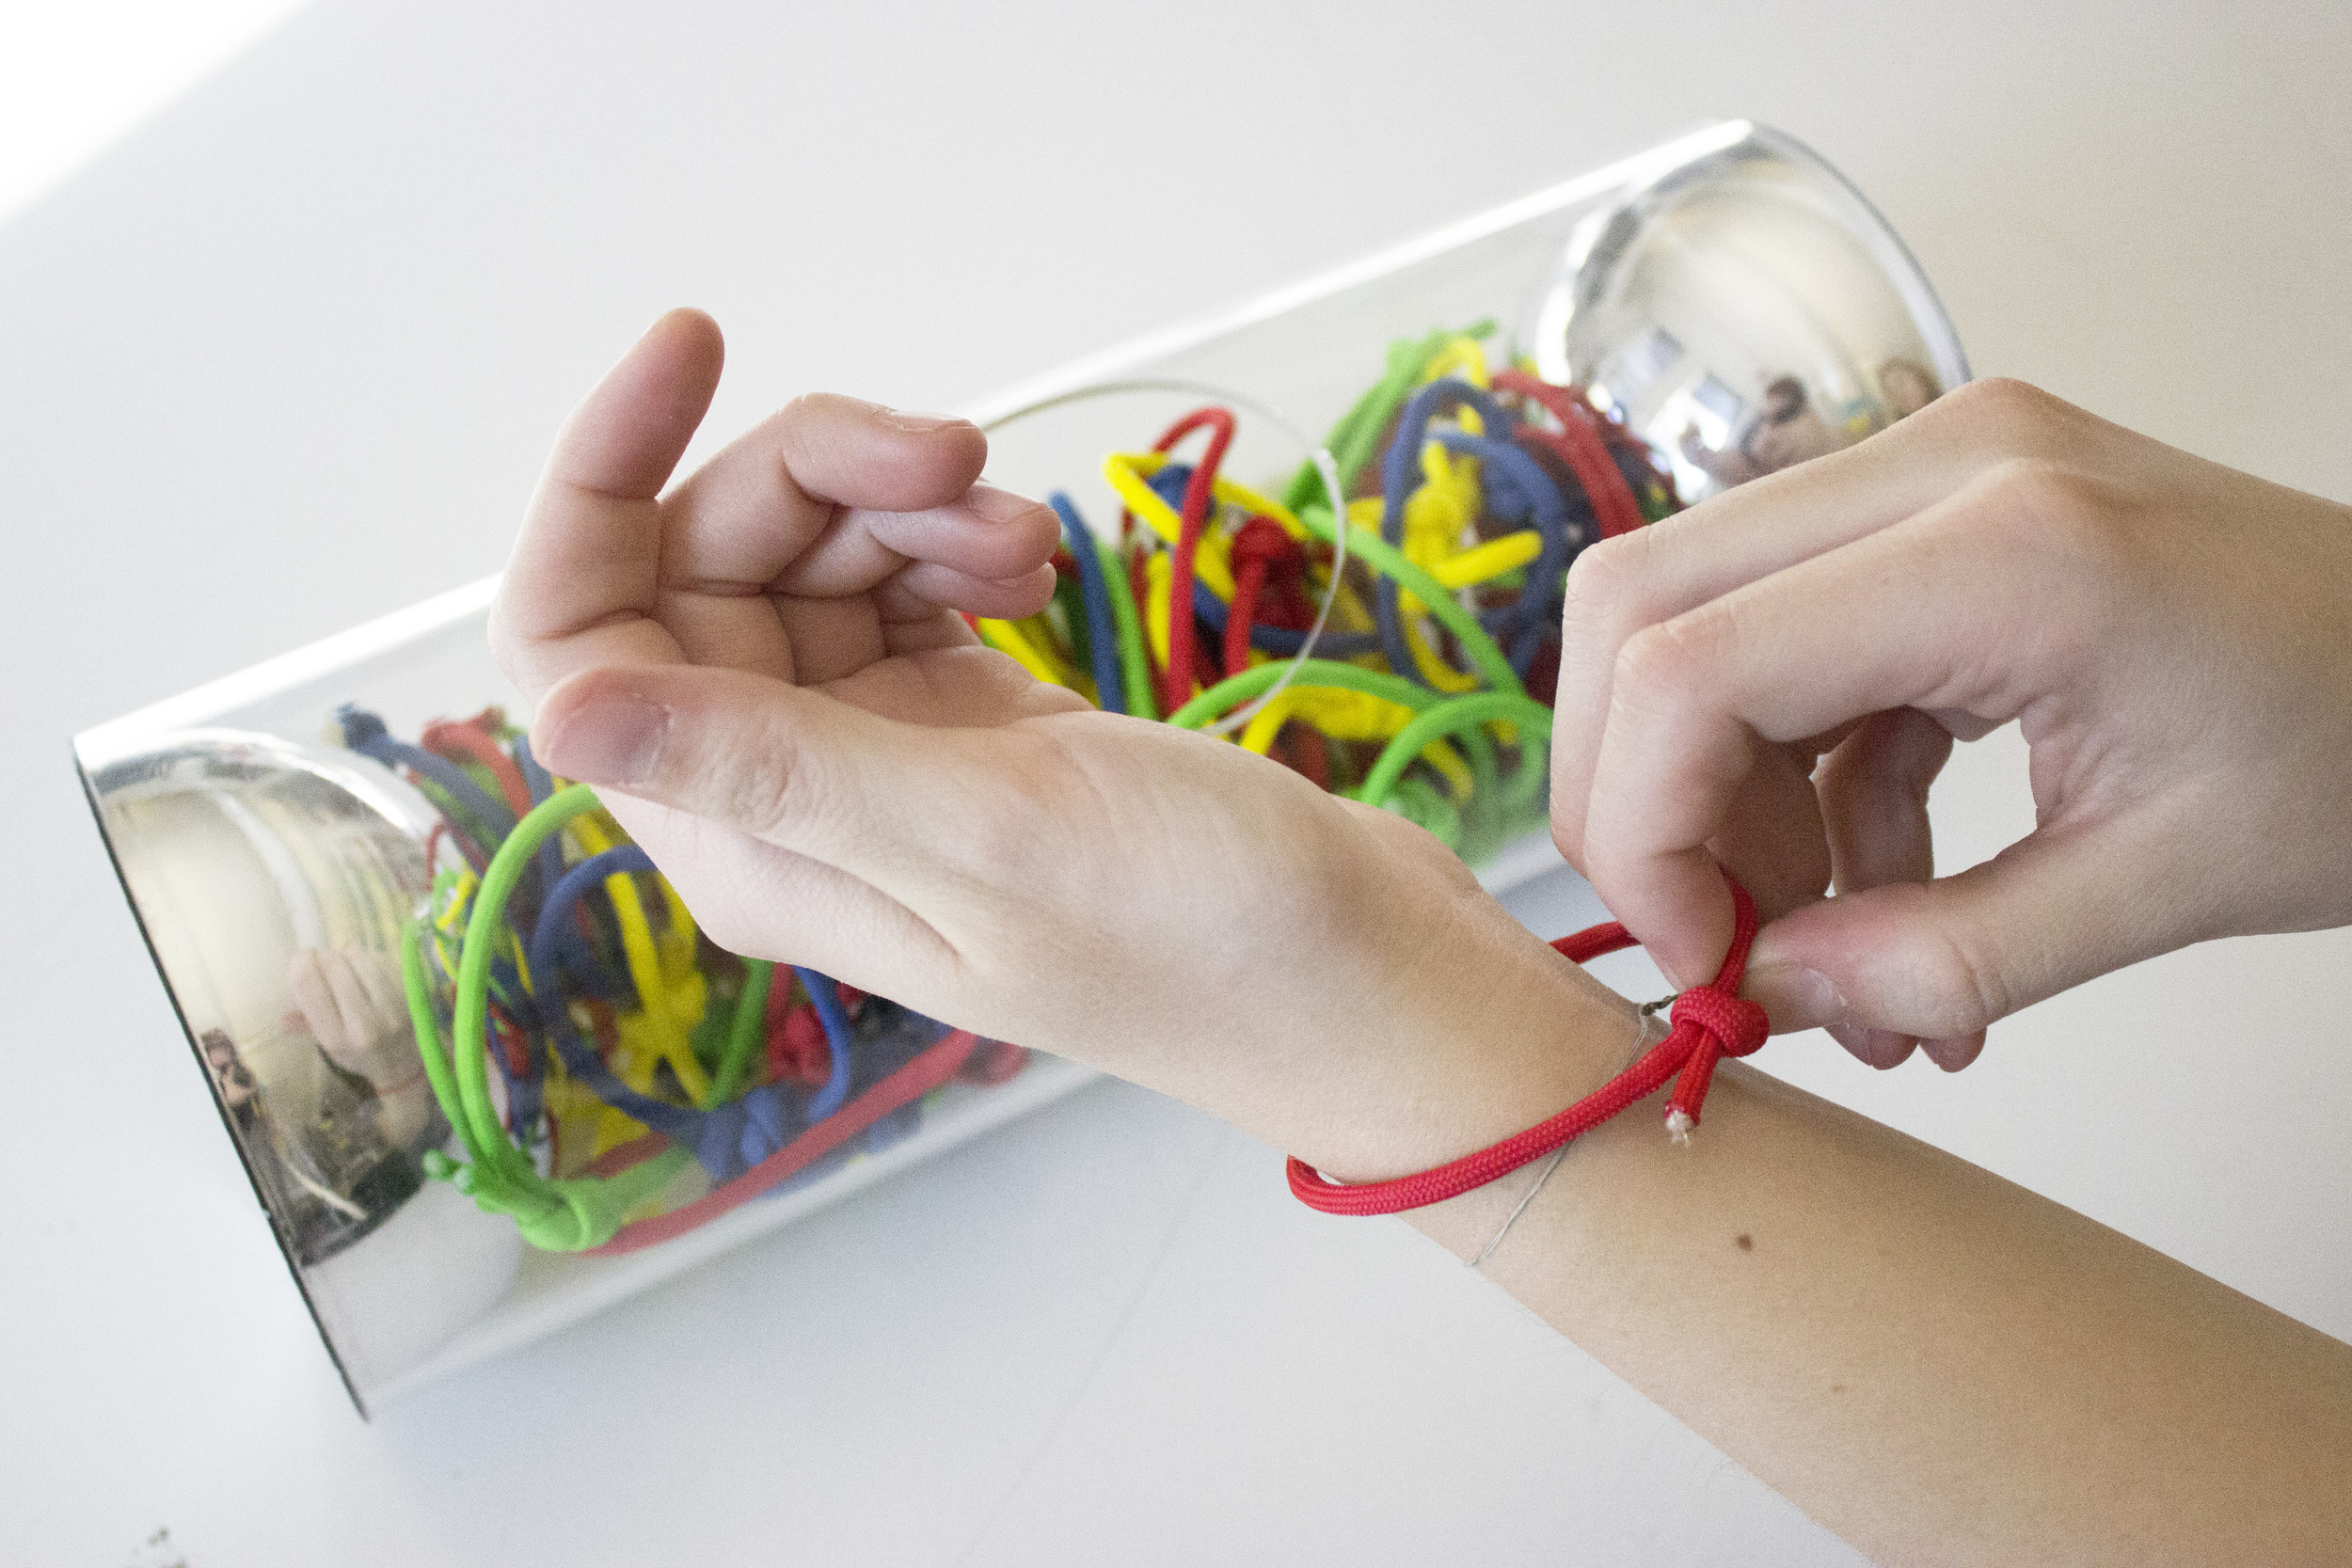 Fig.1: emotional wristbands are used by students to indicate their feelings, increasing classroom empathy